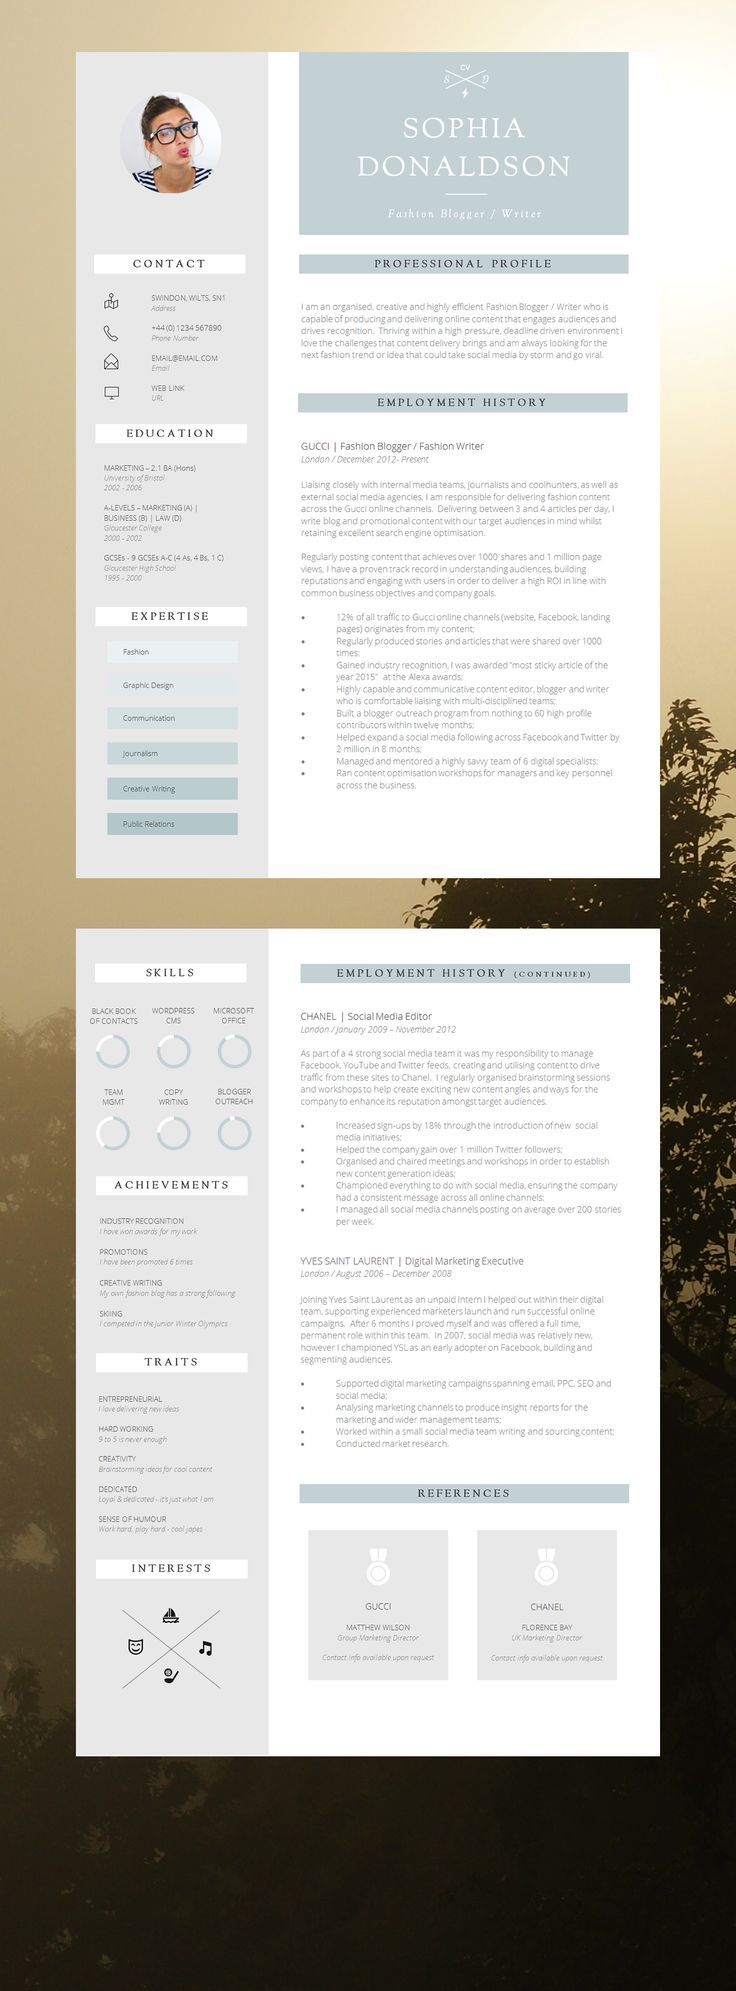 Best Cv Design Images On   Resume Resume Templates